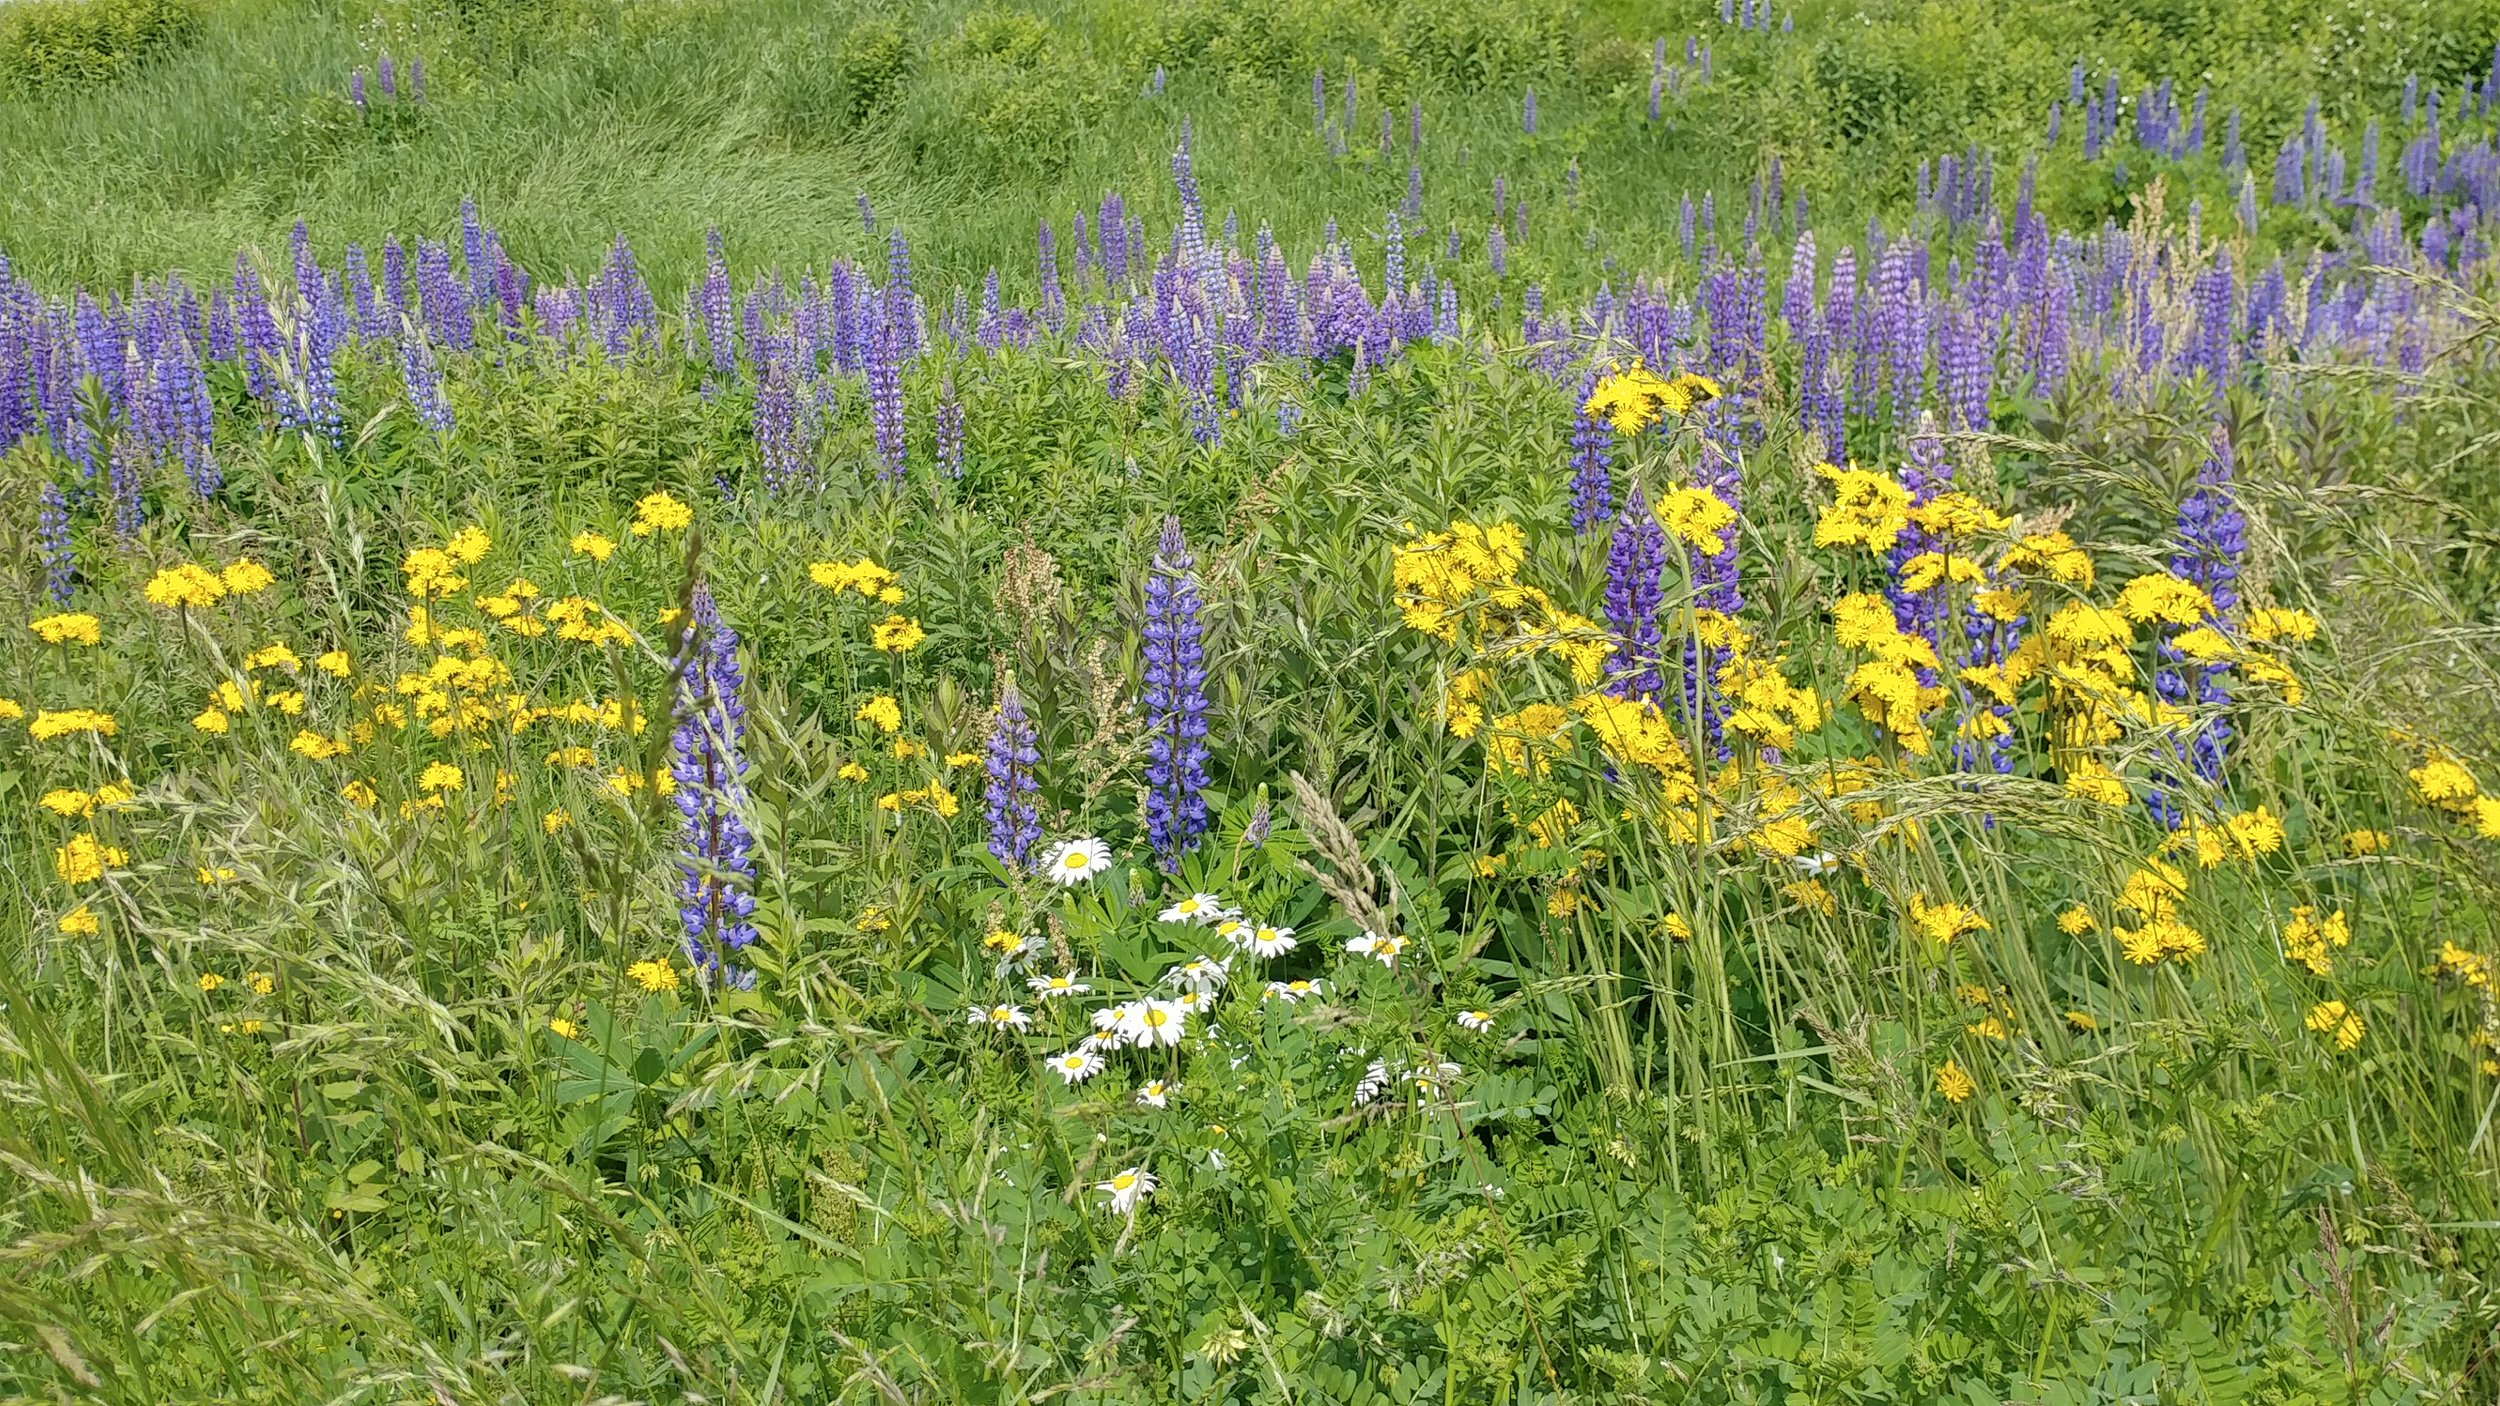 This beautiful filed of wild daisies, lupines and yellow flowers is found on Route One, right near Newcastle, ME. Inns Along the Coast photo.